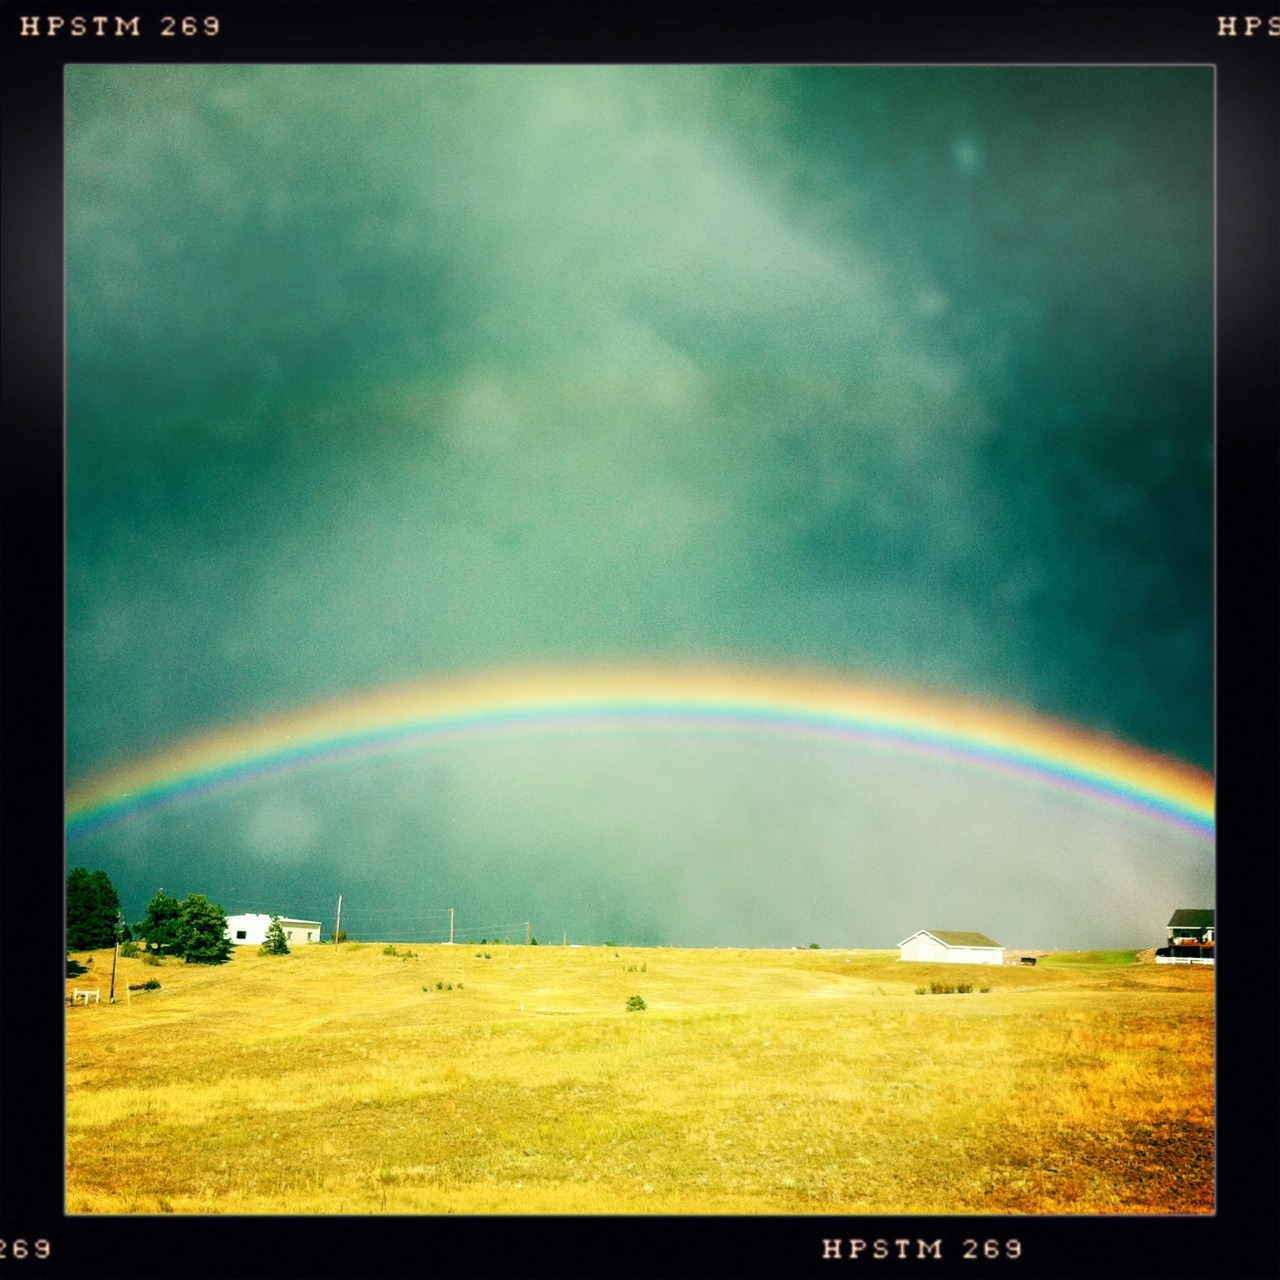 Rainbow II Taken with Hipstamatic, John S Lens, Pistil Film, No Flash.